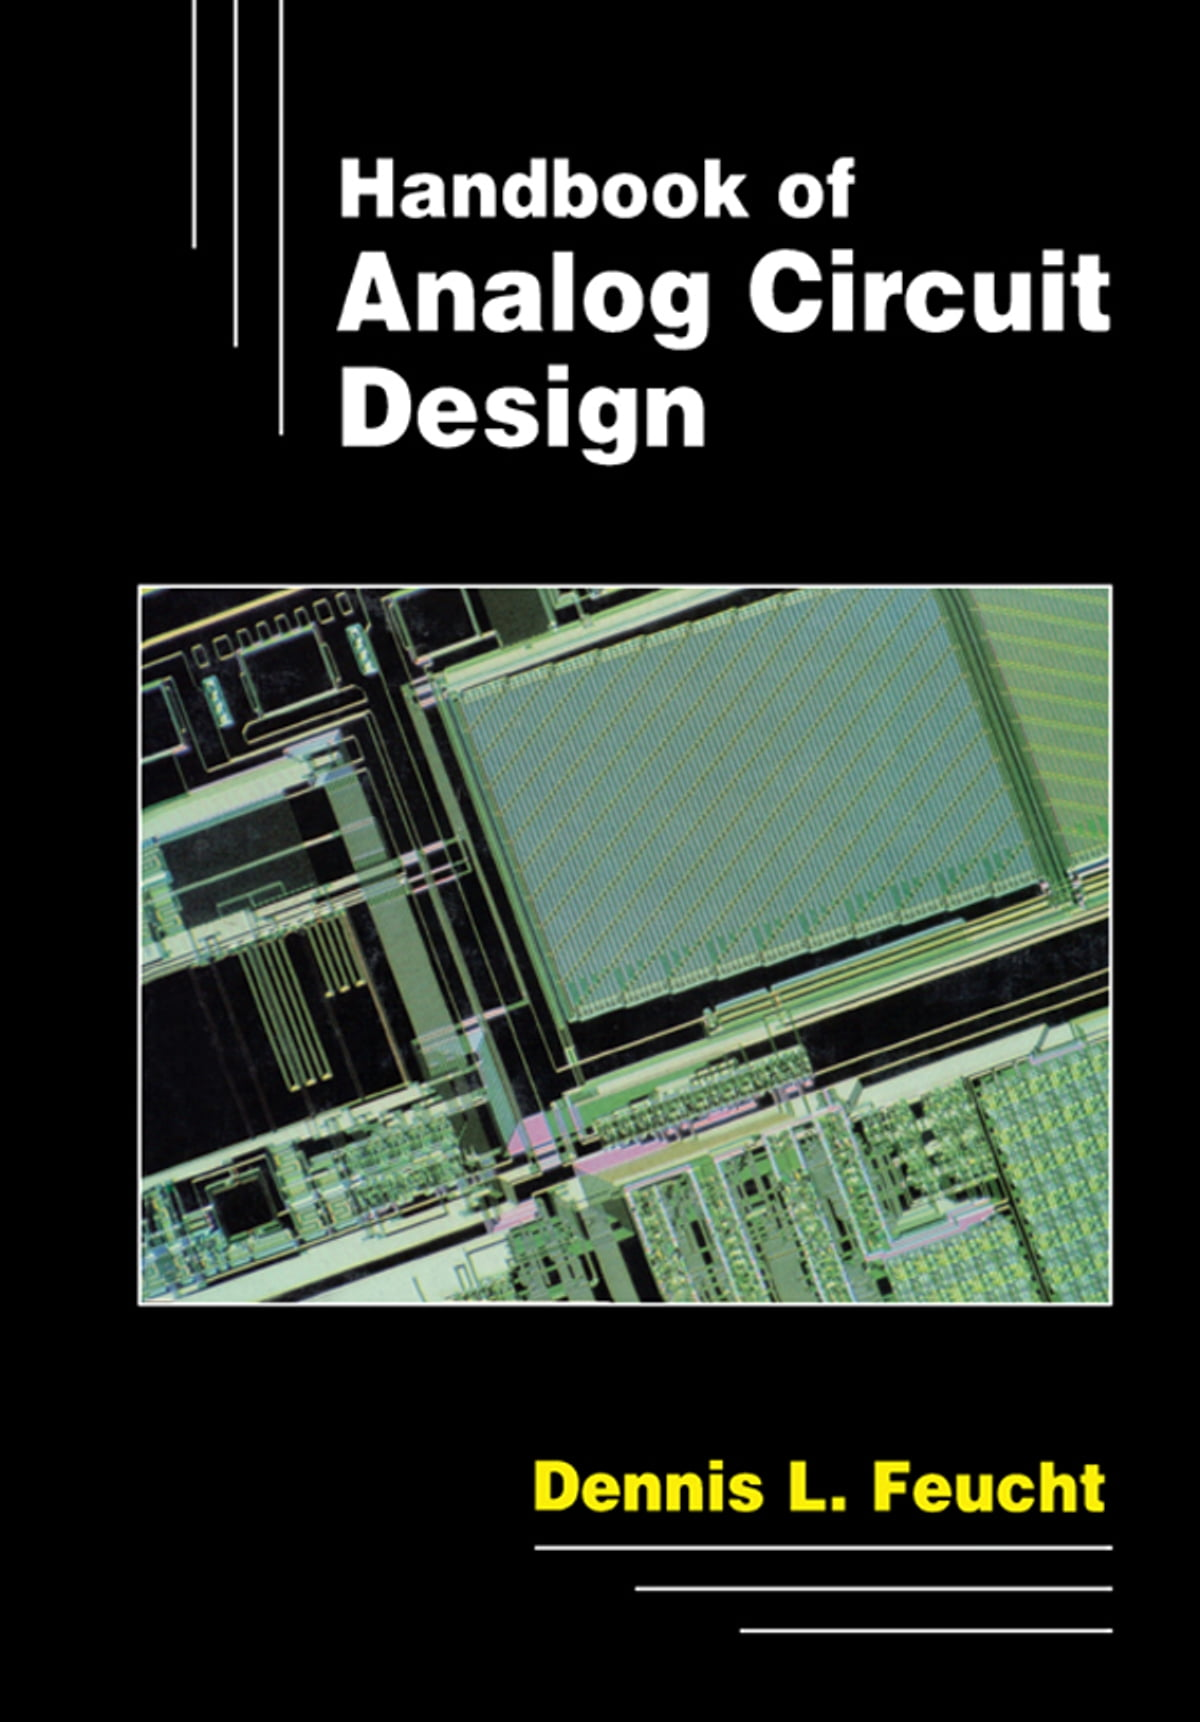 Handbook Of Analog Circuit Design Ebook By Dennis L Feucht Basic Electronic 9781483259383 Rakuten Kobo